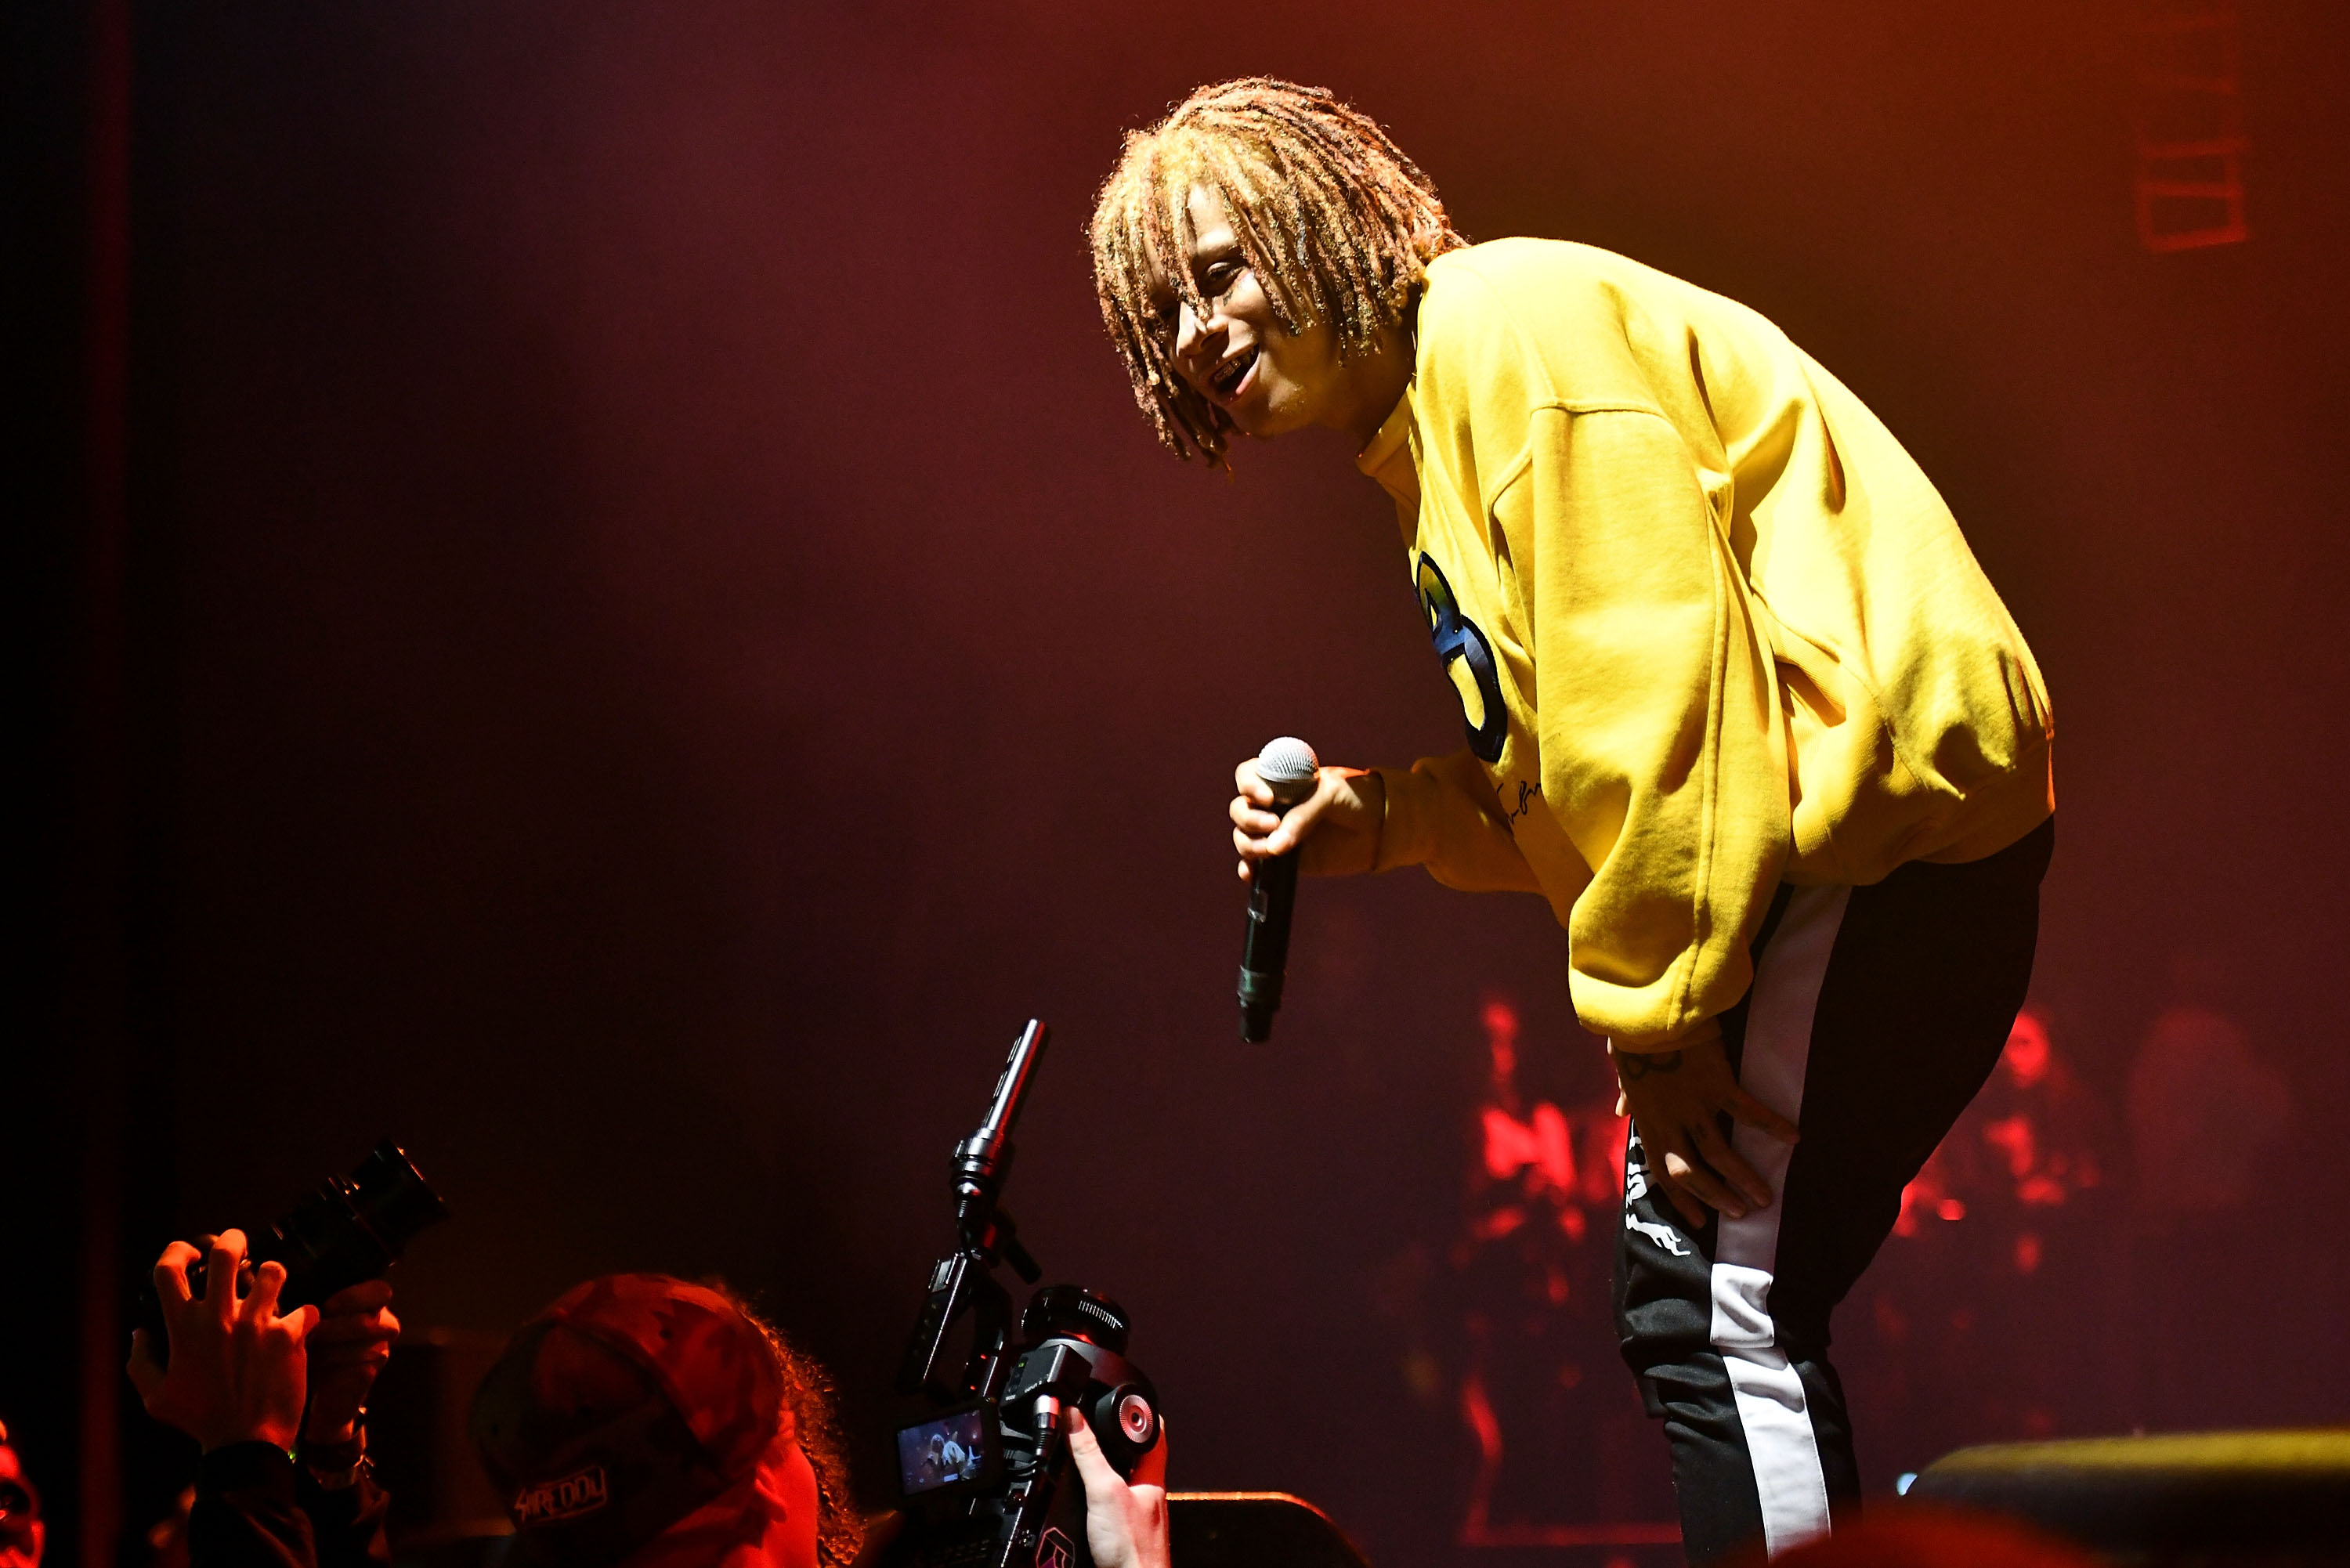 Trippie Redd Performs At The Novo